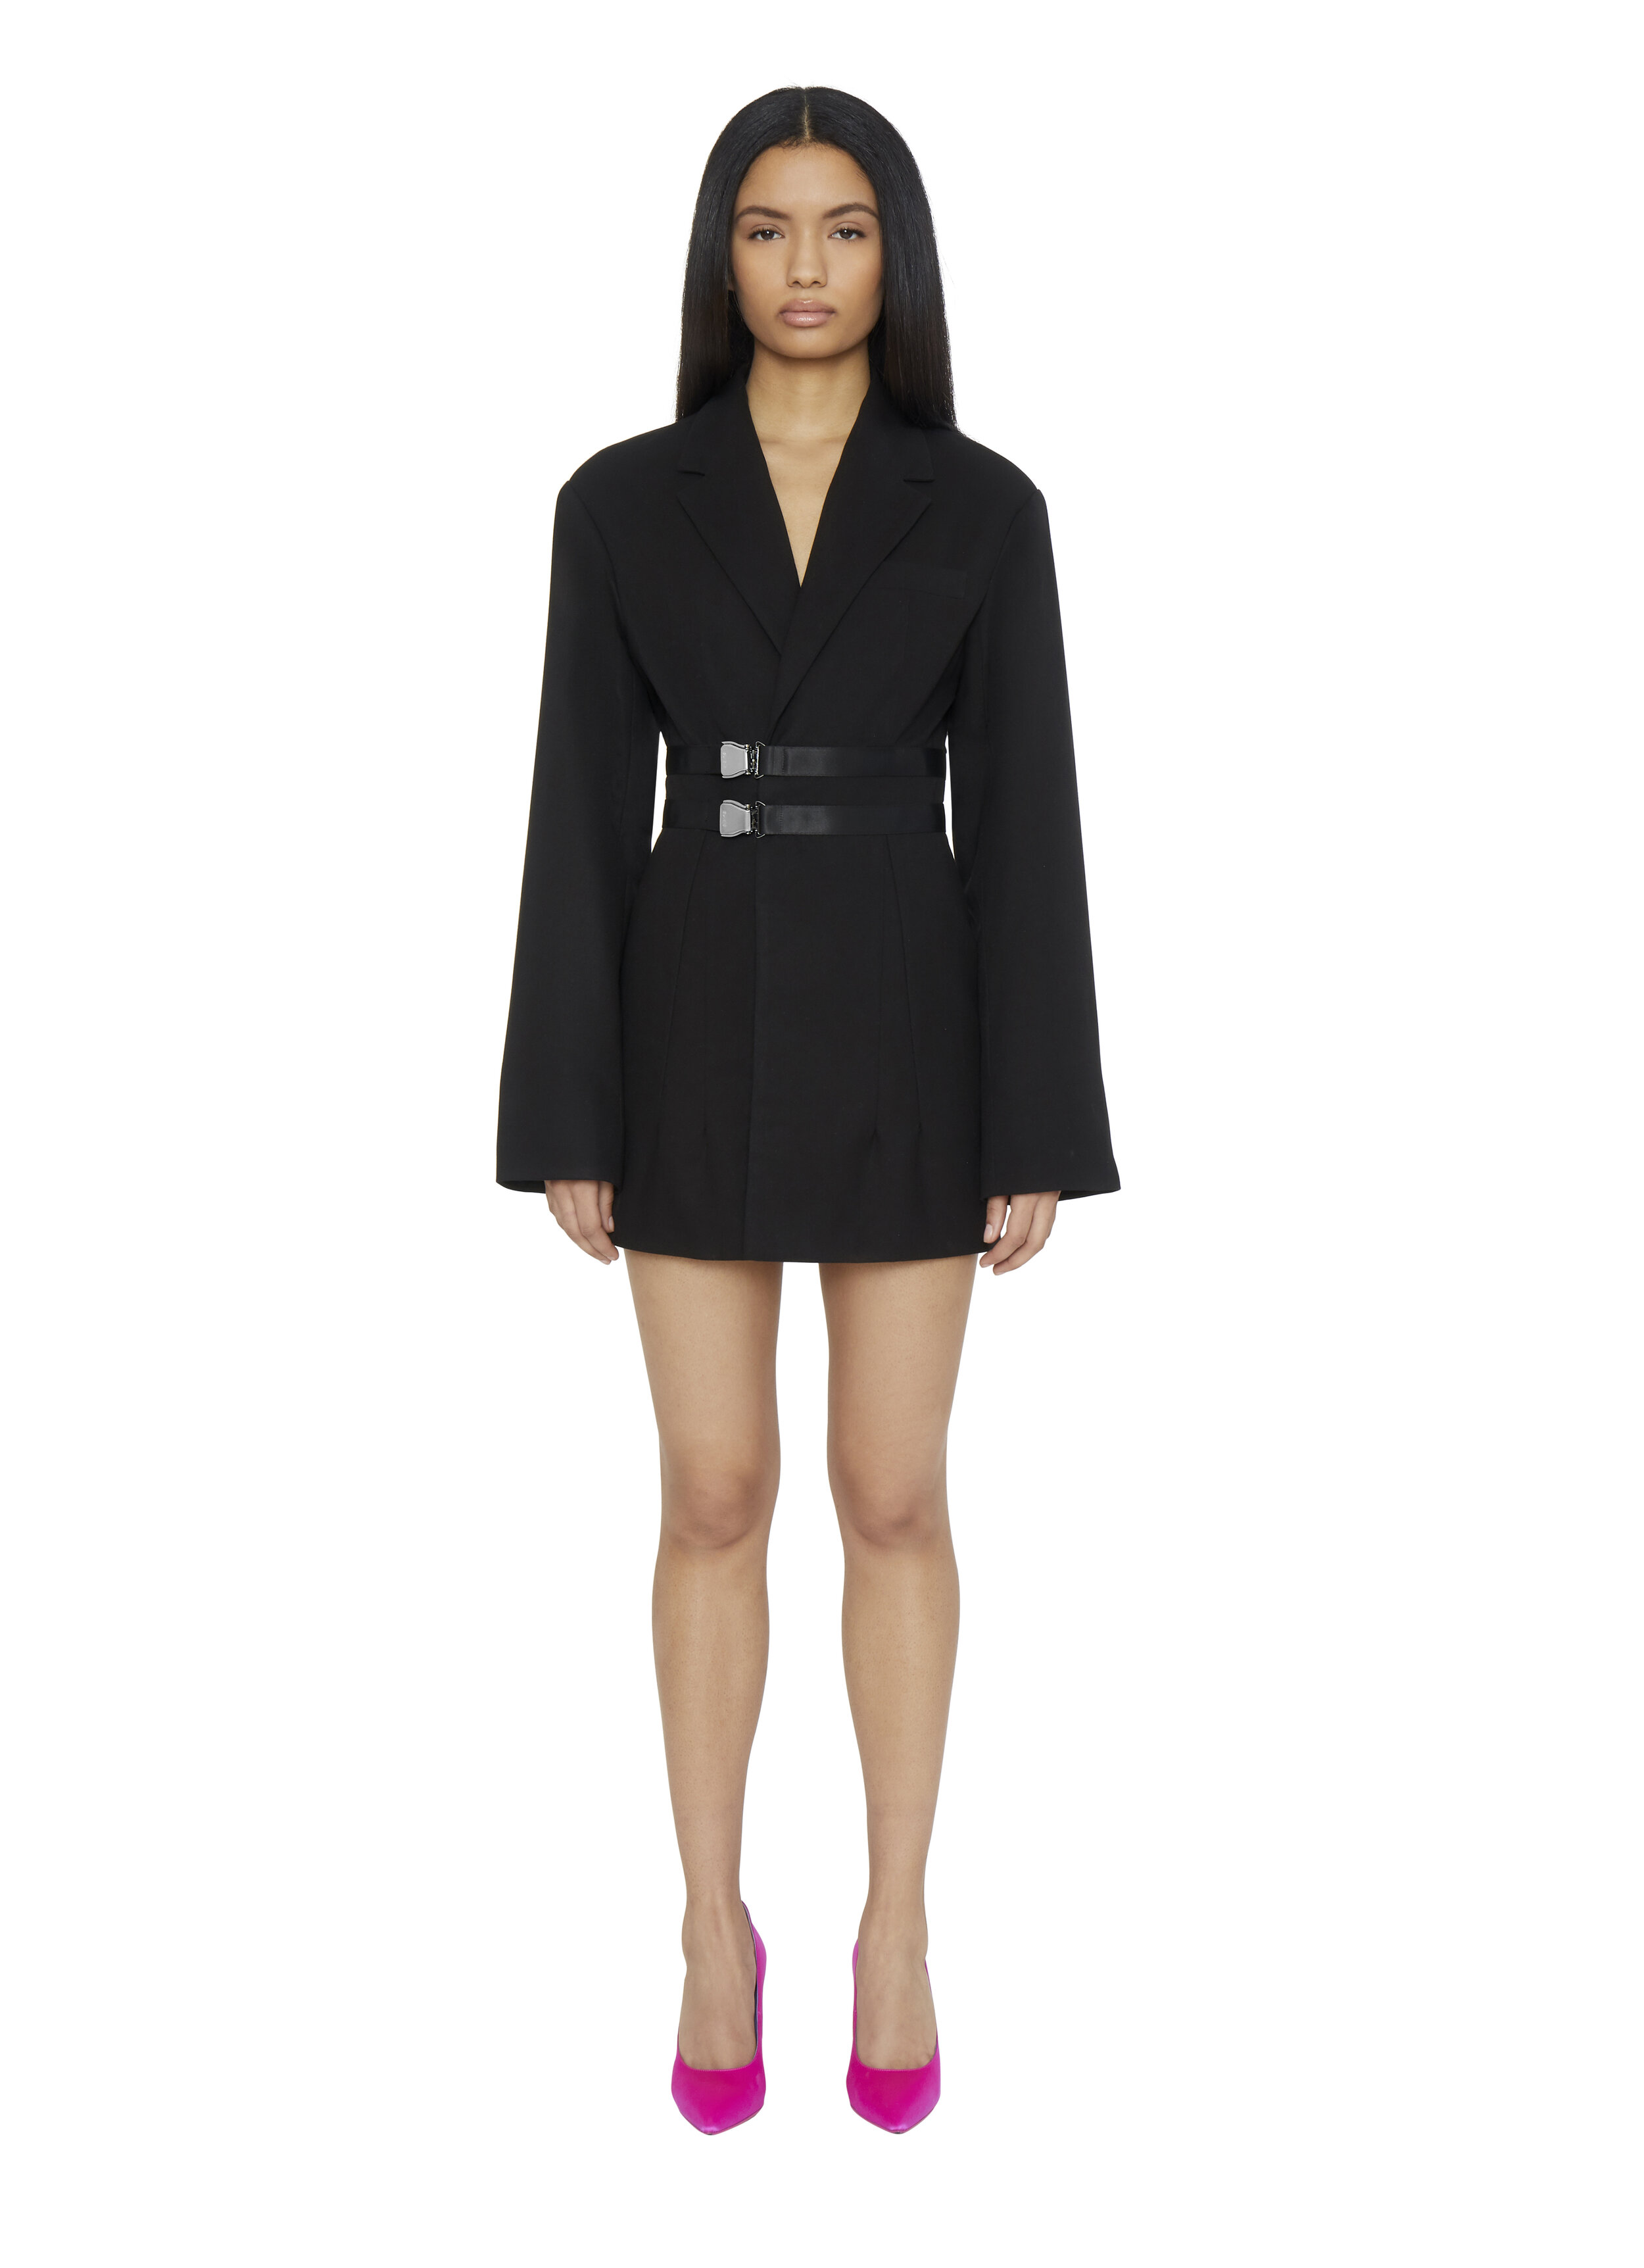 OVERSIZED BUCKLE WRAP BLAZER DRESS by Danielle Guizio, available on danielleguiziony.com for $468 Kendall Jenner Outerwear SIMILAR PRODUCT